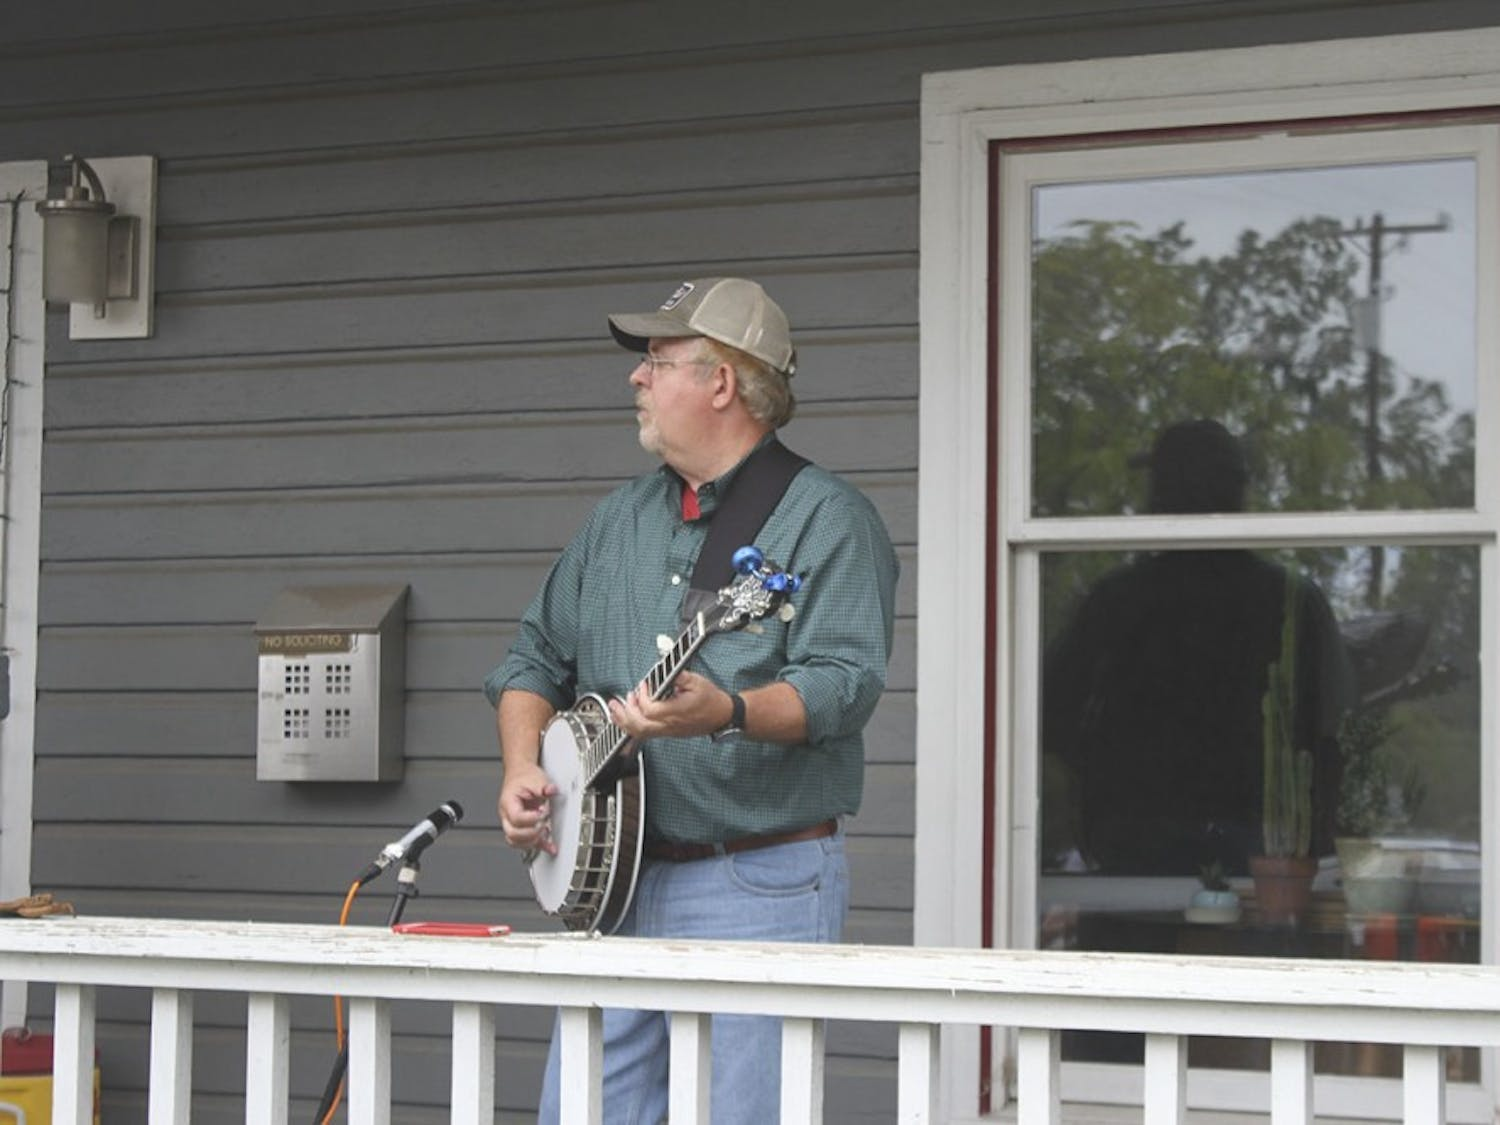 Many various artists performed at the Carrboro Music Festival on Sunday throughout downtown.